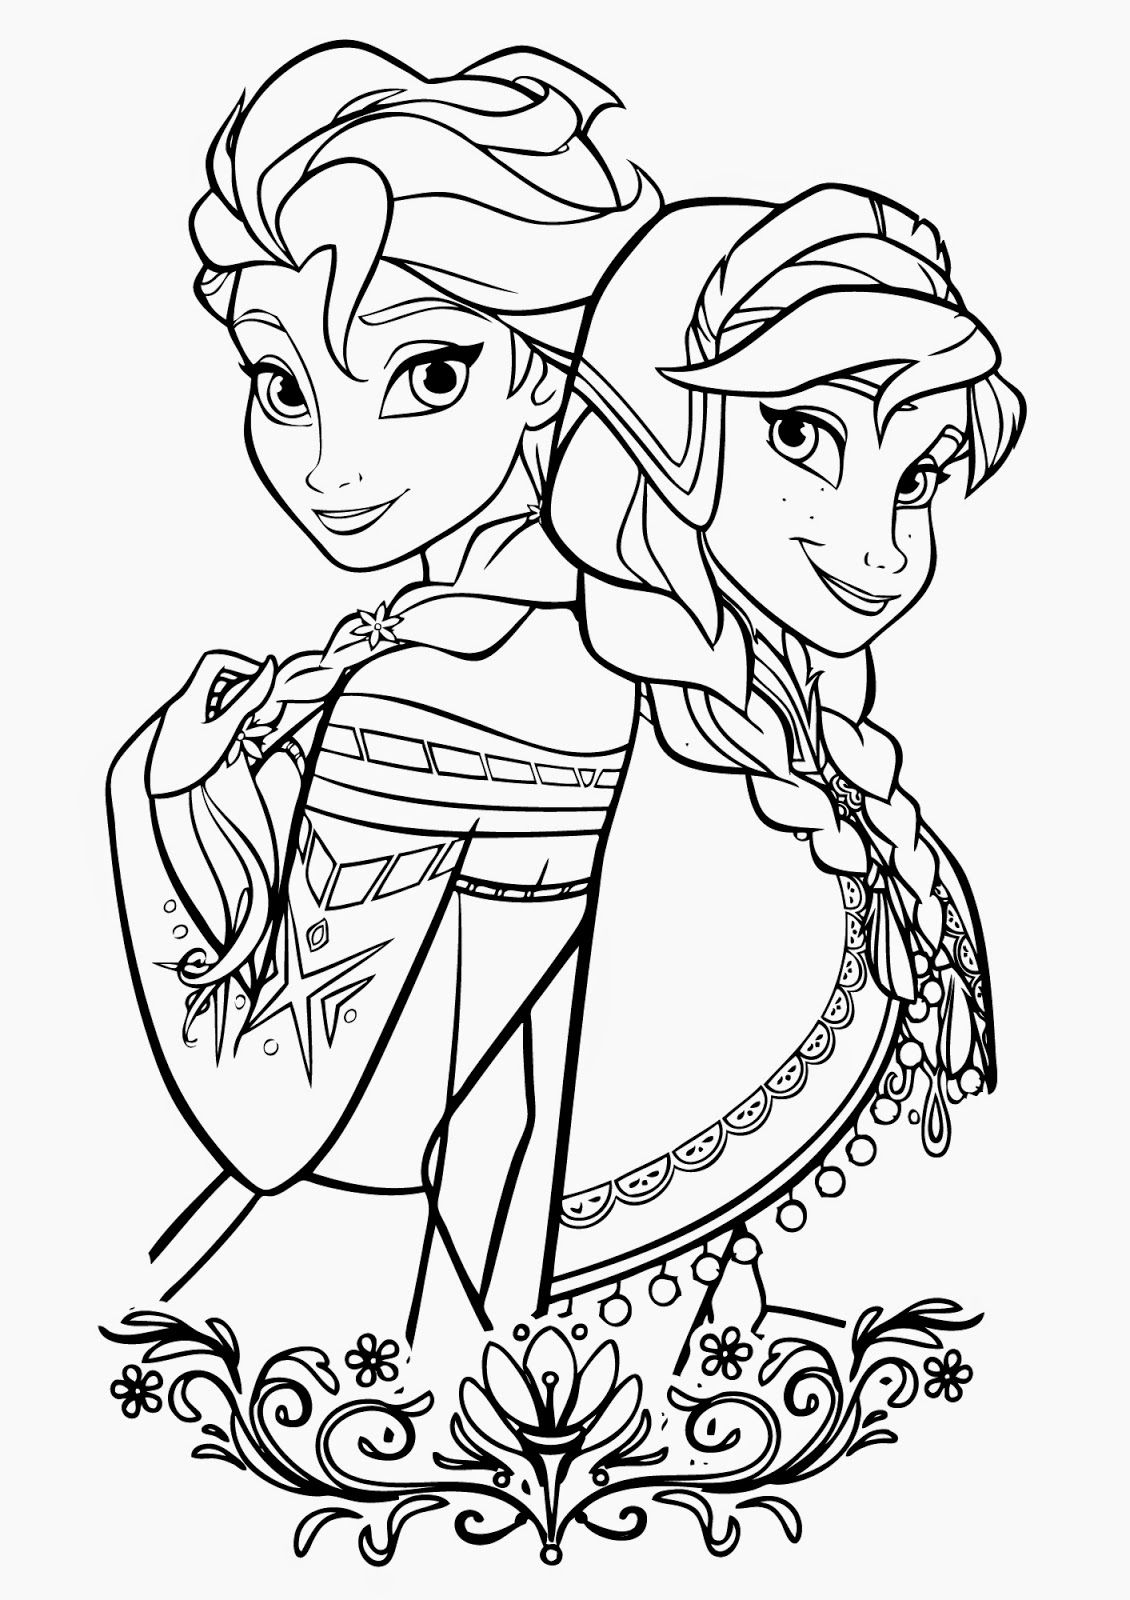 Get The Latest Free Elsa Freeze Coloring Page Images Favorite Pages To Print Online By ONLY COLORING PAGES